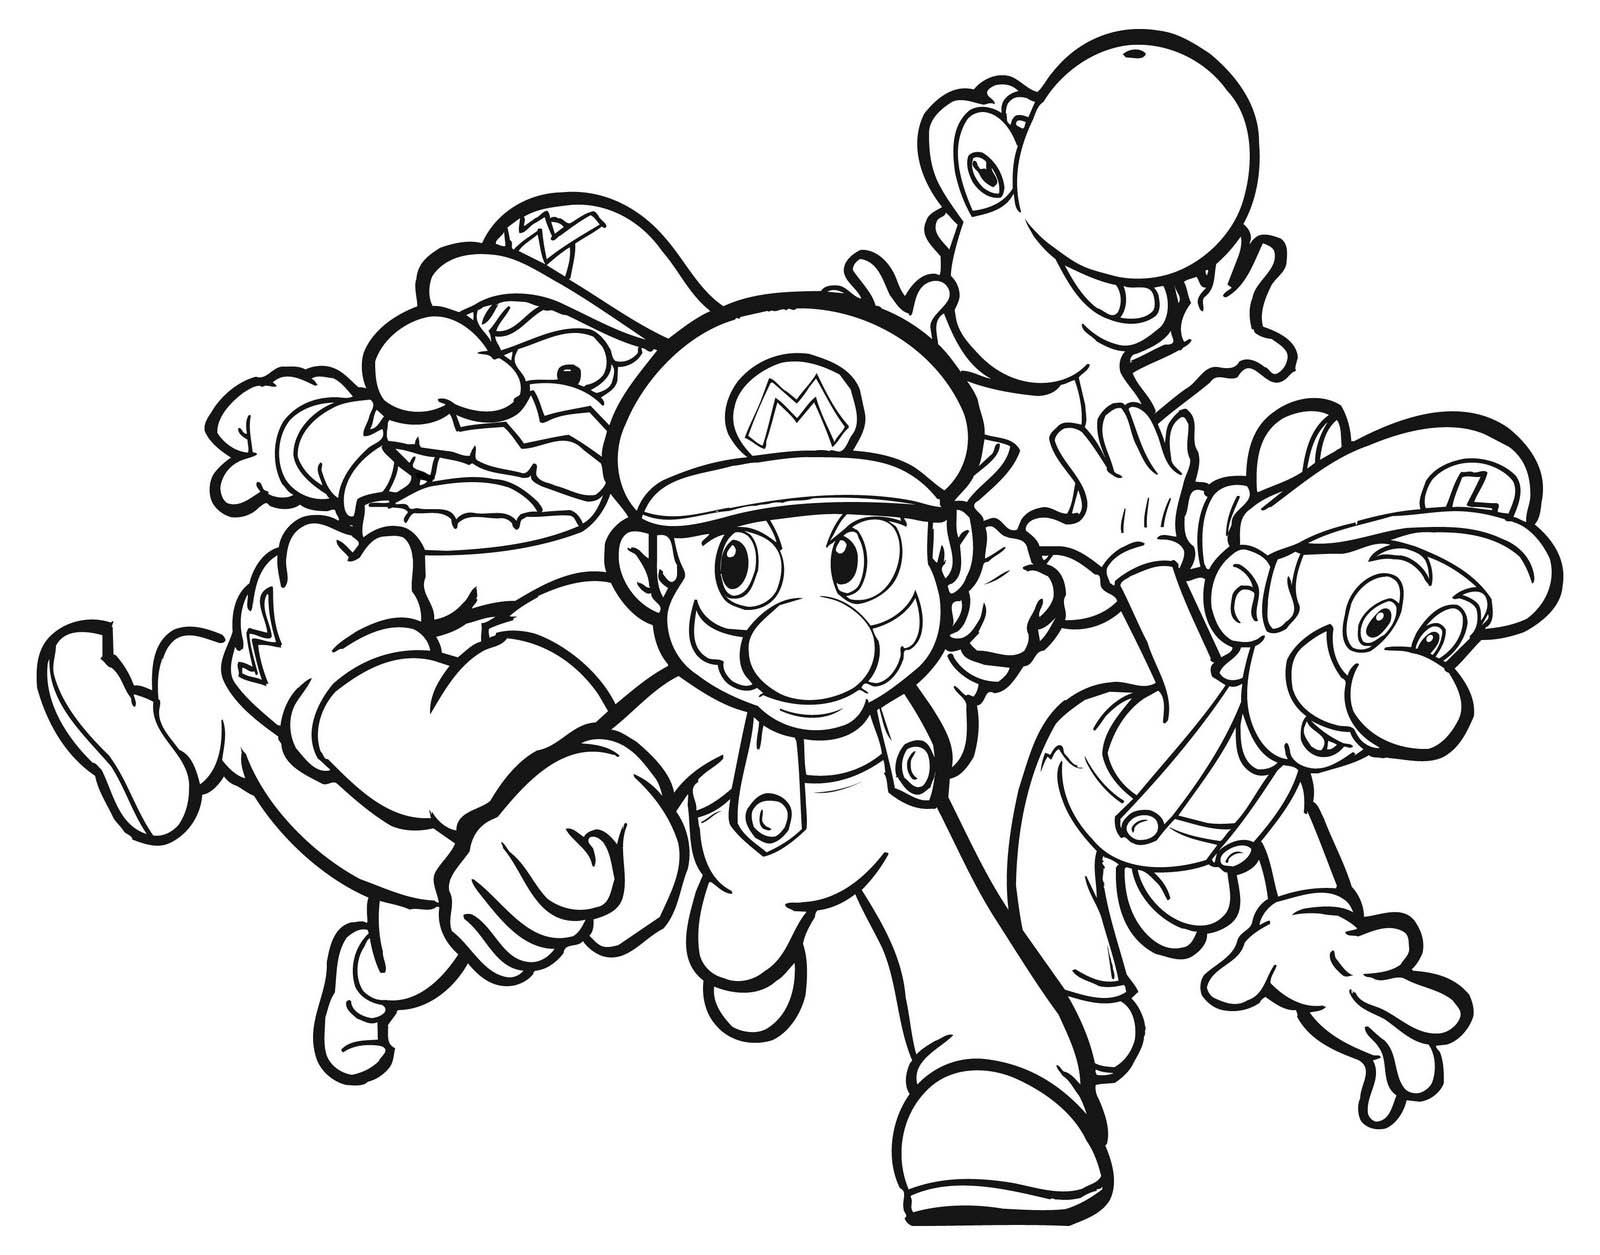 Mario Coloring Pages - Free Printable Pictures Coloring ...